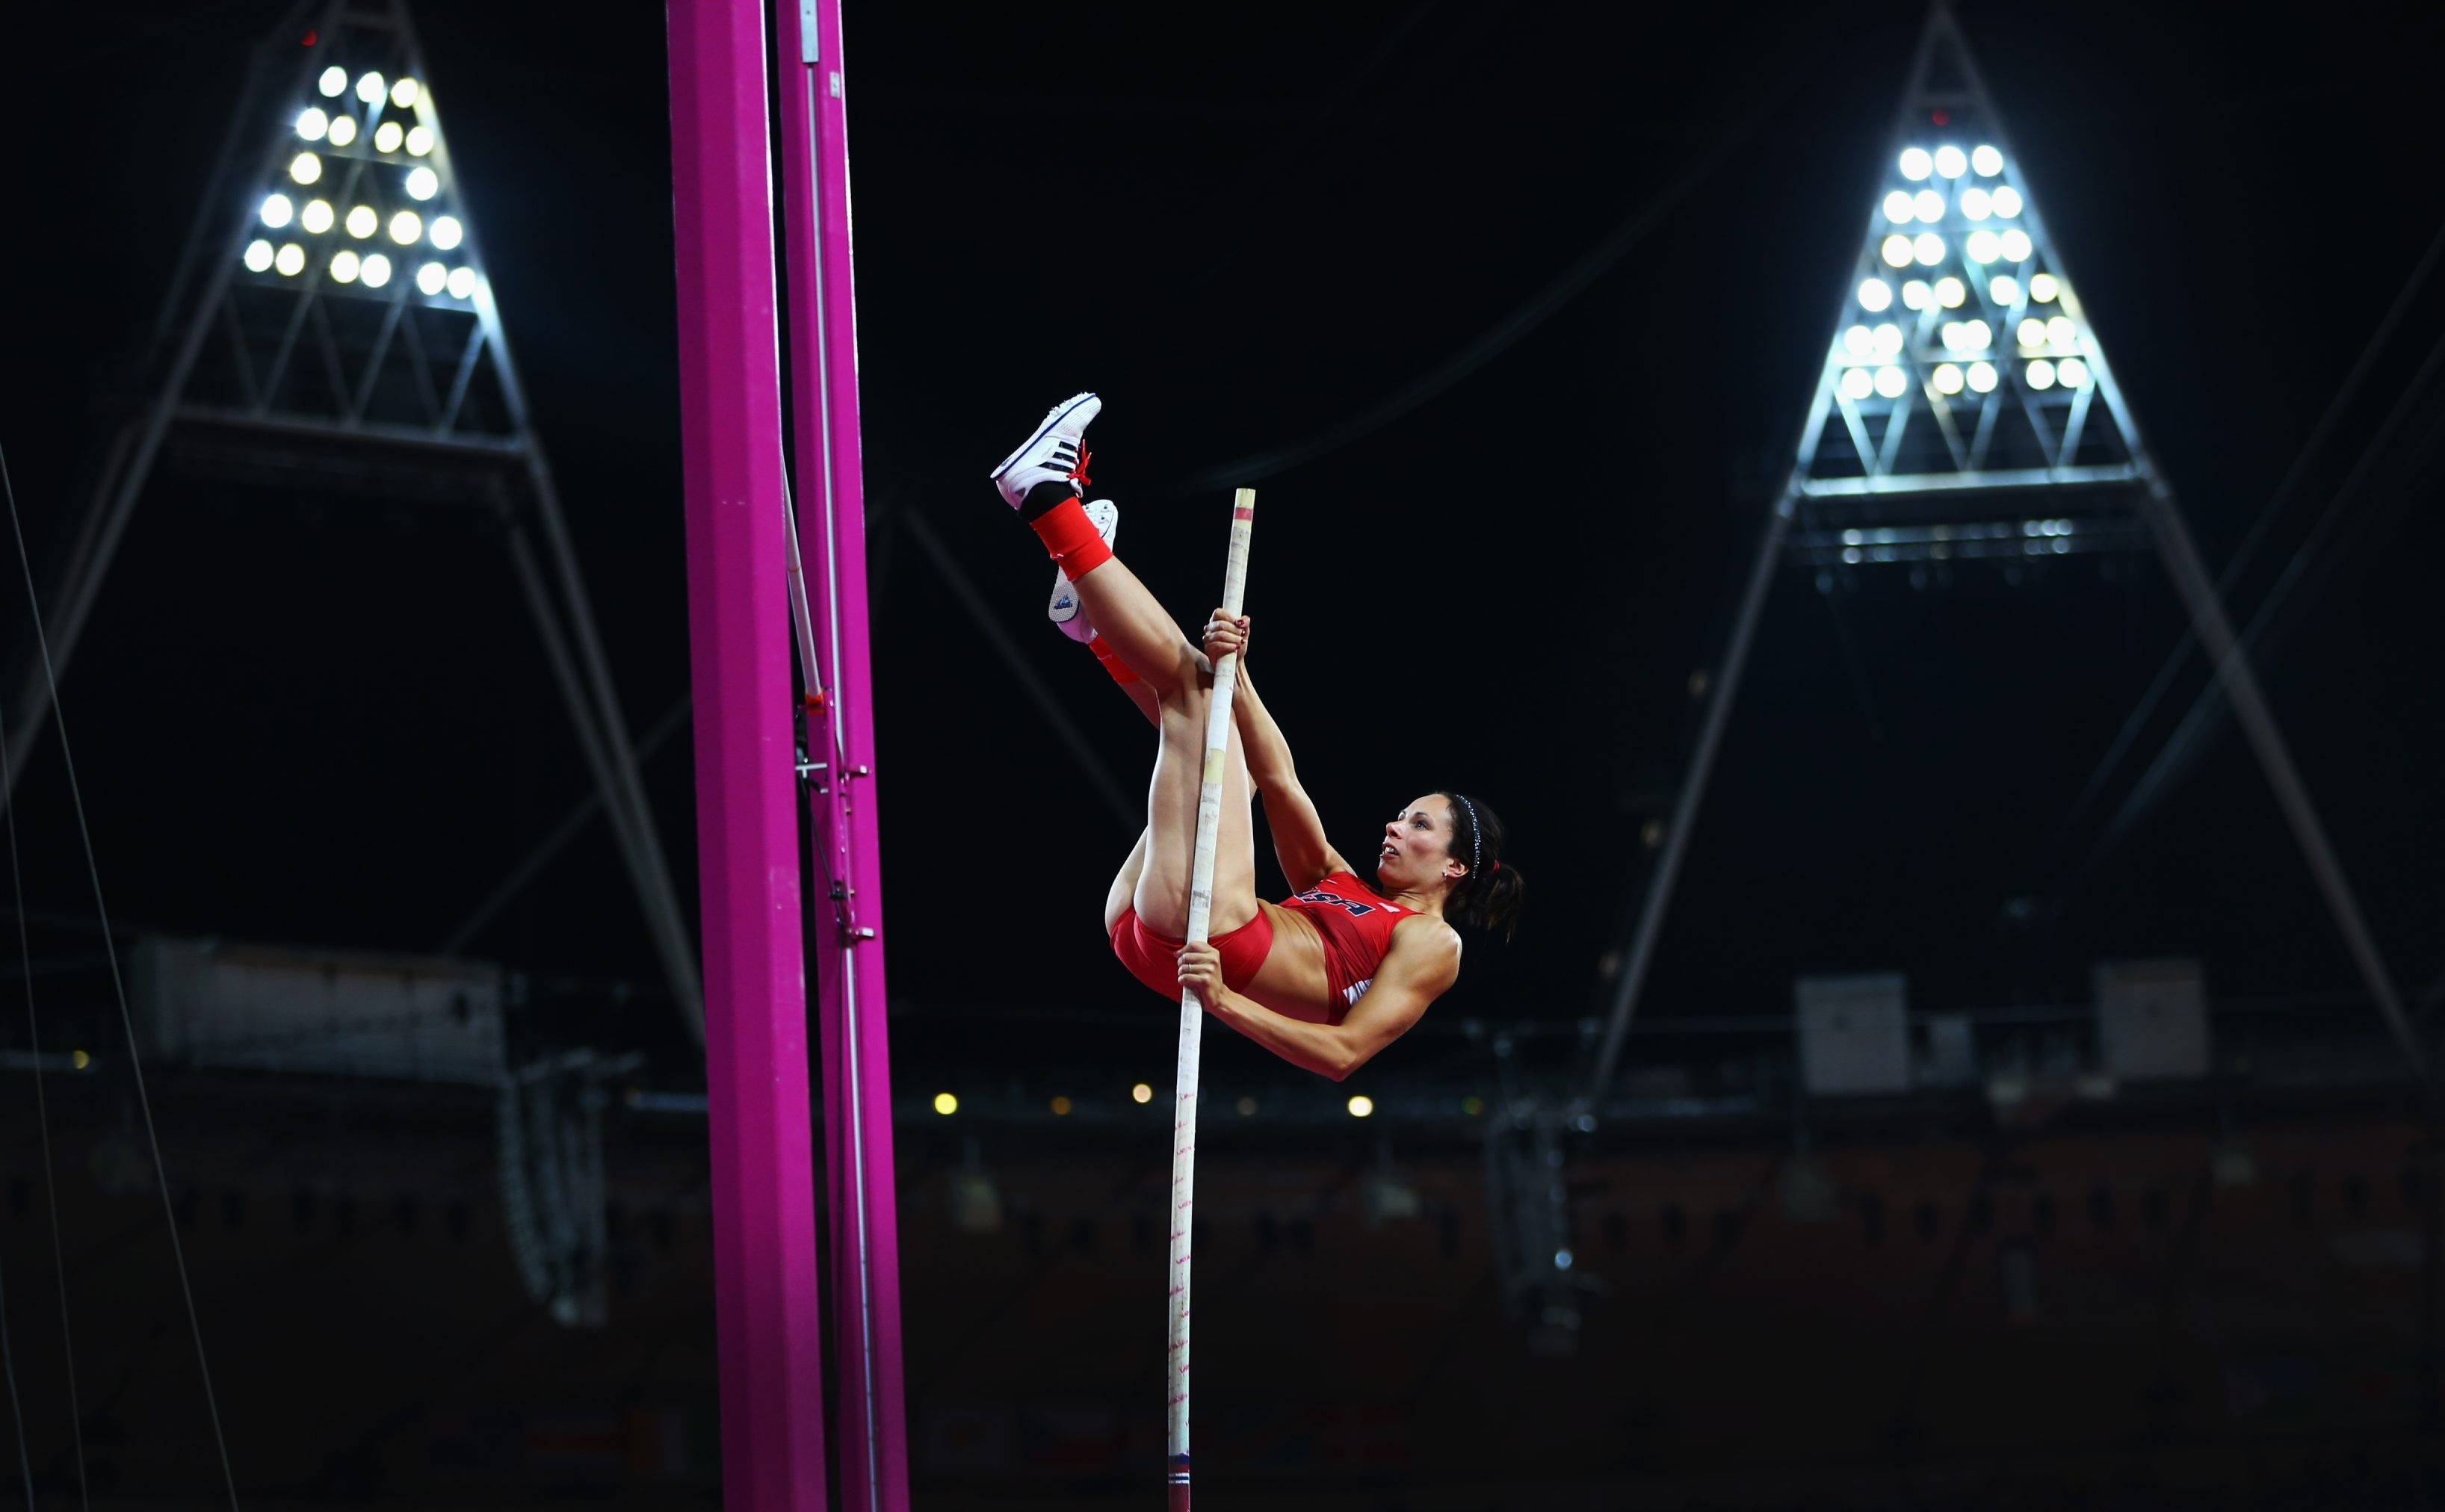 Jennifer Suhr of the United States competes in London in 2012, where she won the gold. (Getty Images)